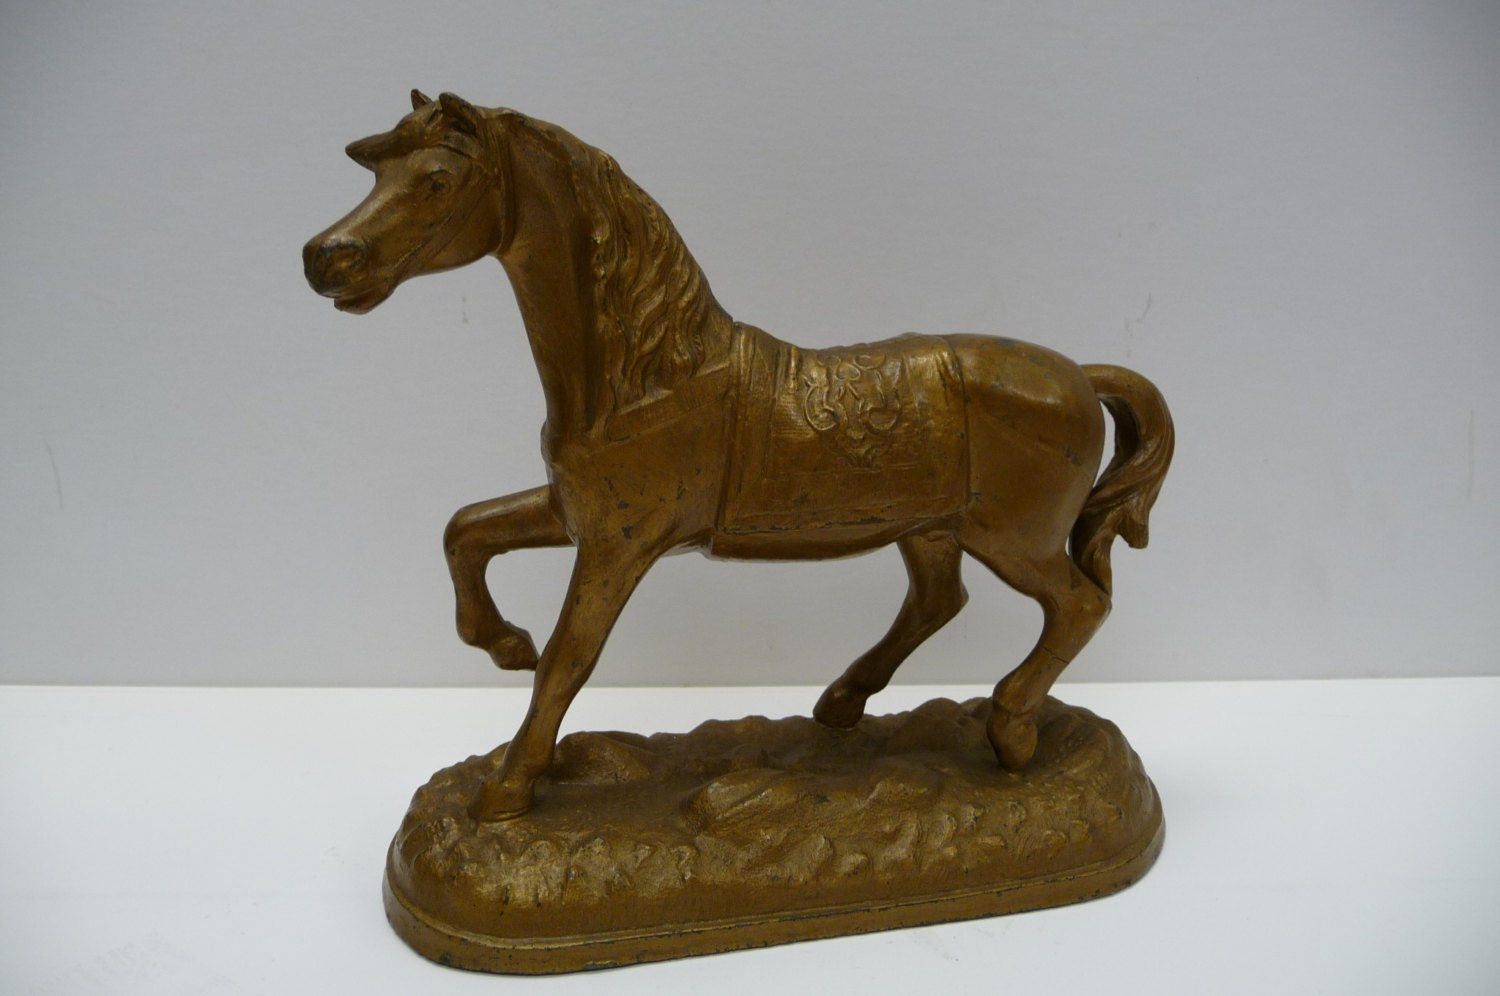 Vintage Antique Horse Cast Metal Sculpture Figurine Arabian On